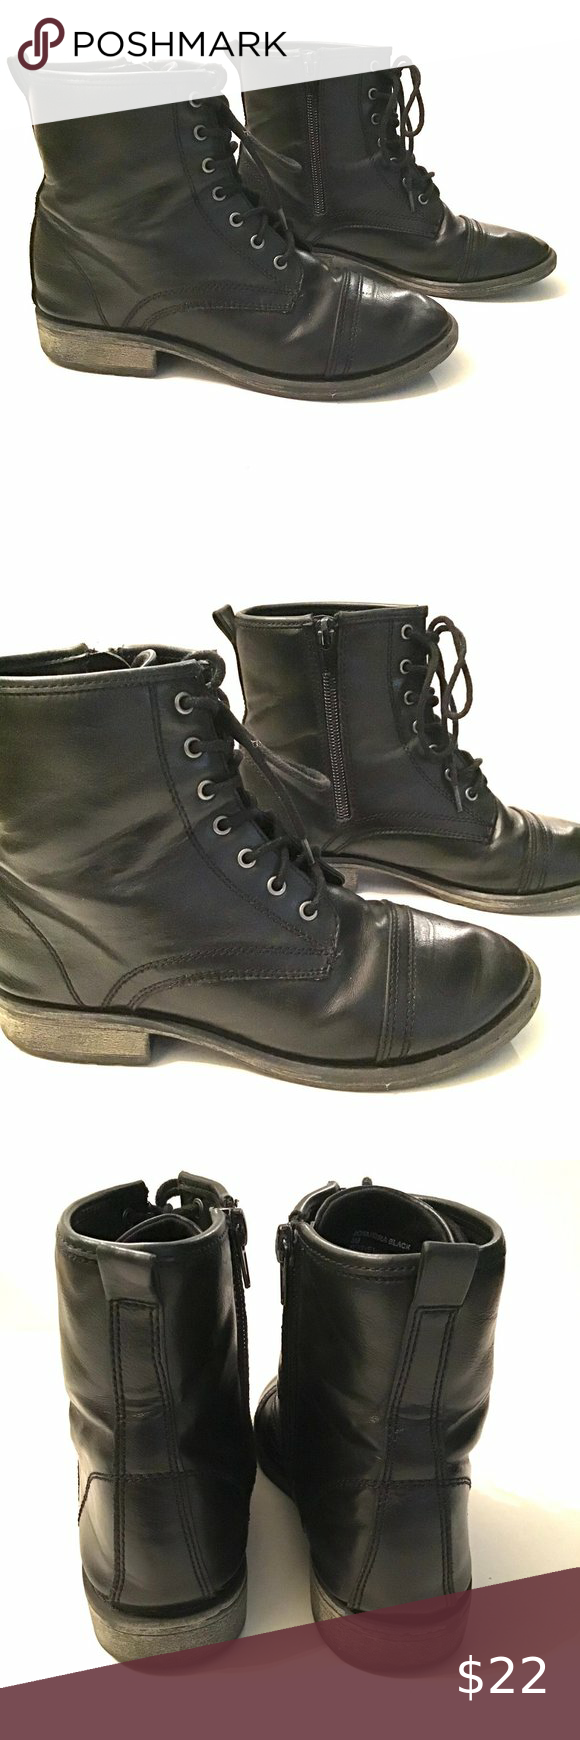 Madden Girl Combat Boots Size 3 Kids in